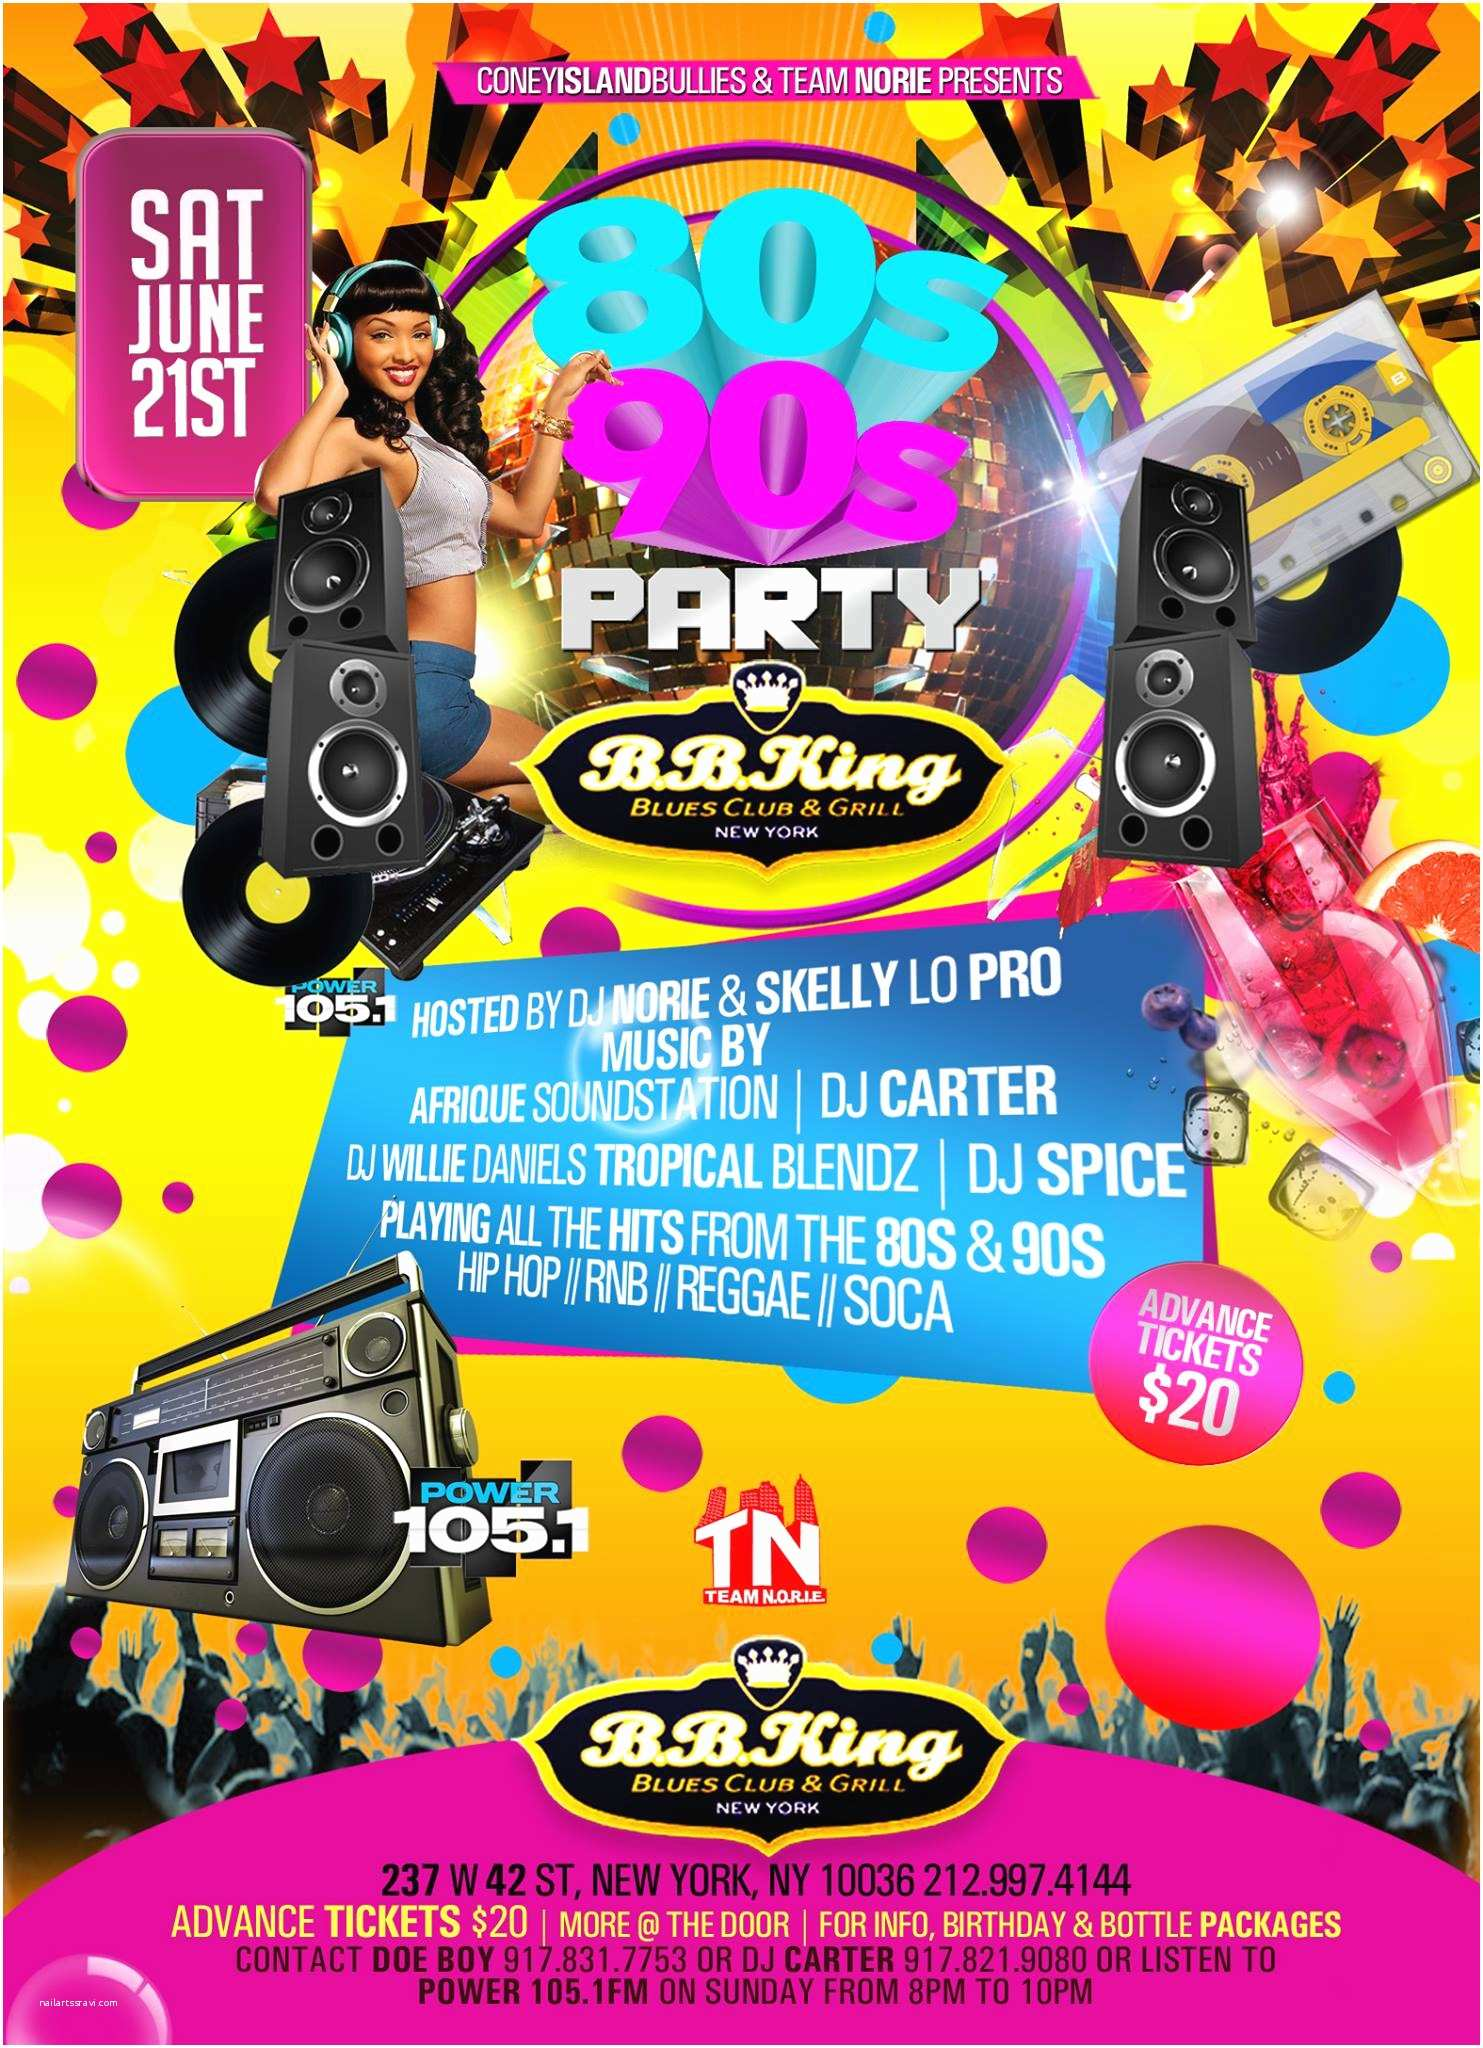 90s Party Invitation tonight Last Chance to Tixs Online 80s and 90s Party